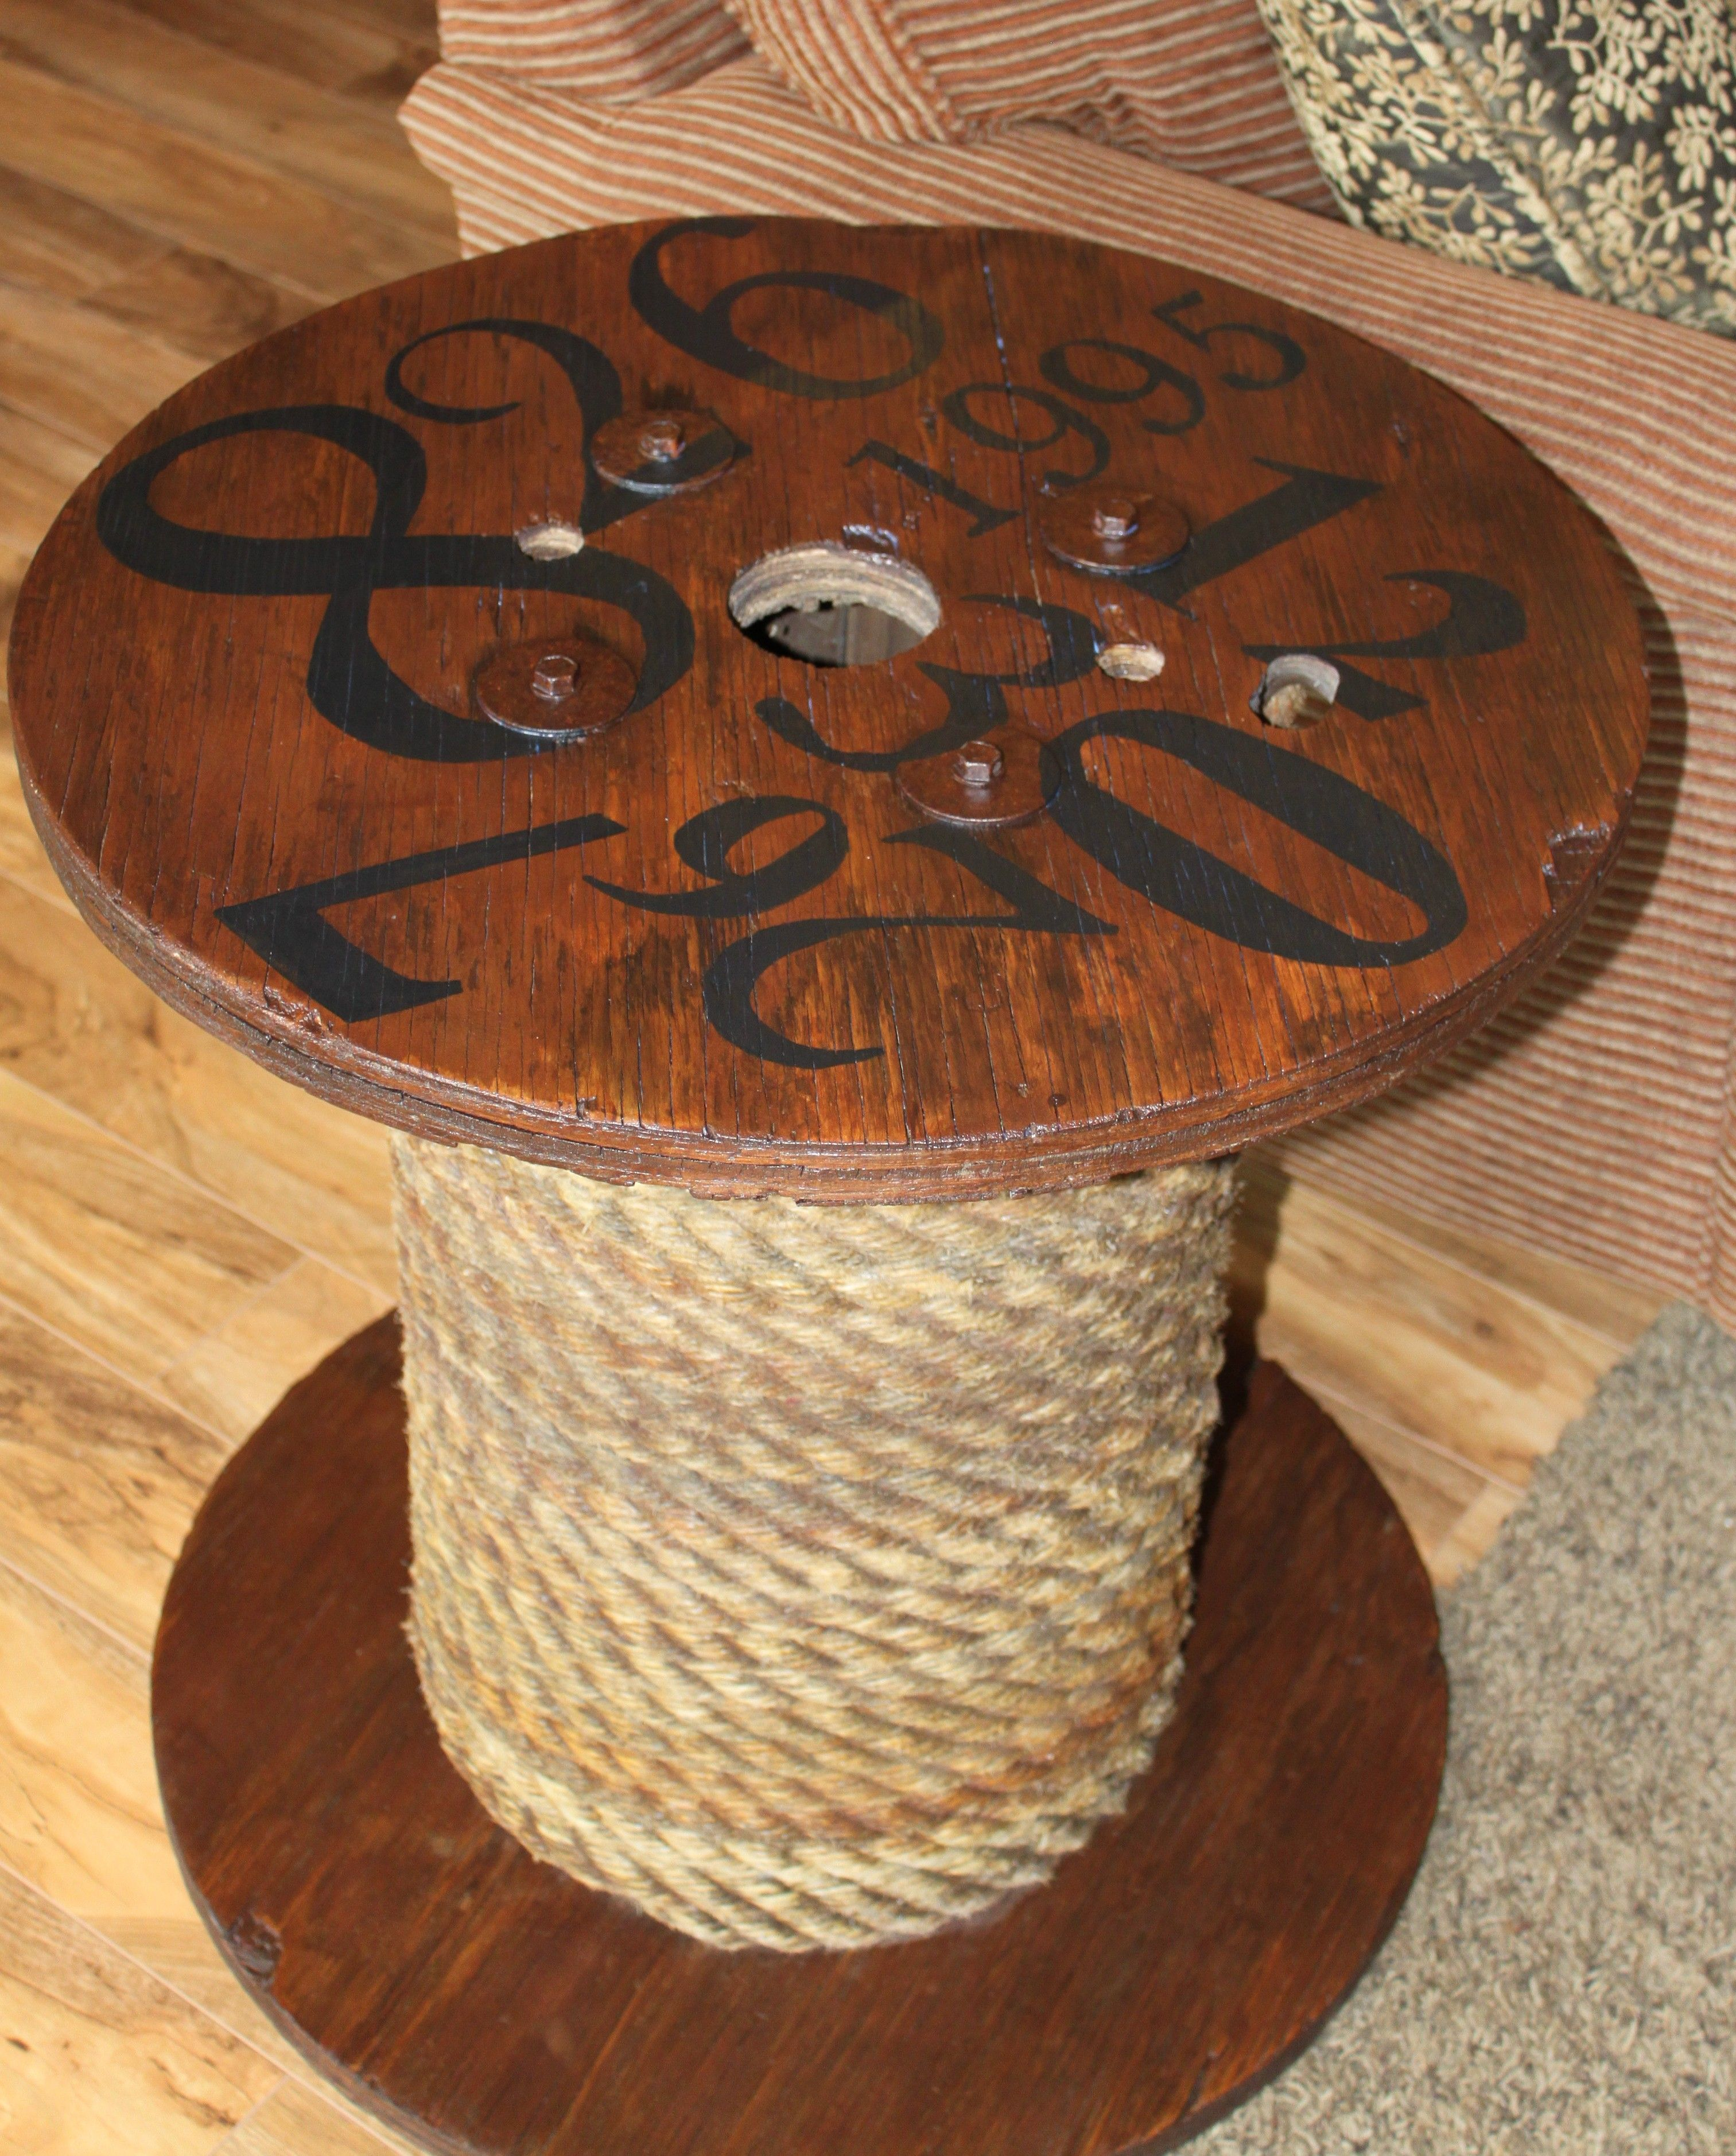 Spool Chair For Sale Evenflo Compact Fold High My Version Of A Table 7 Dollar Garage